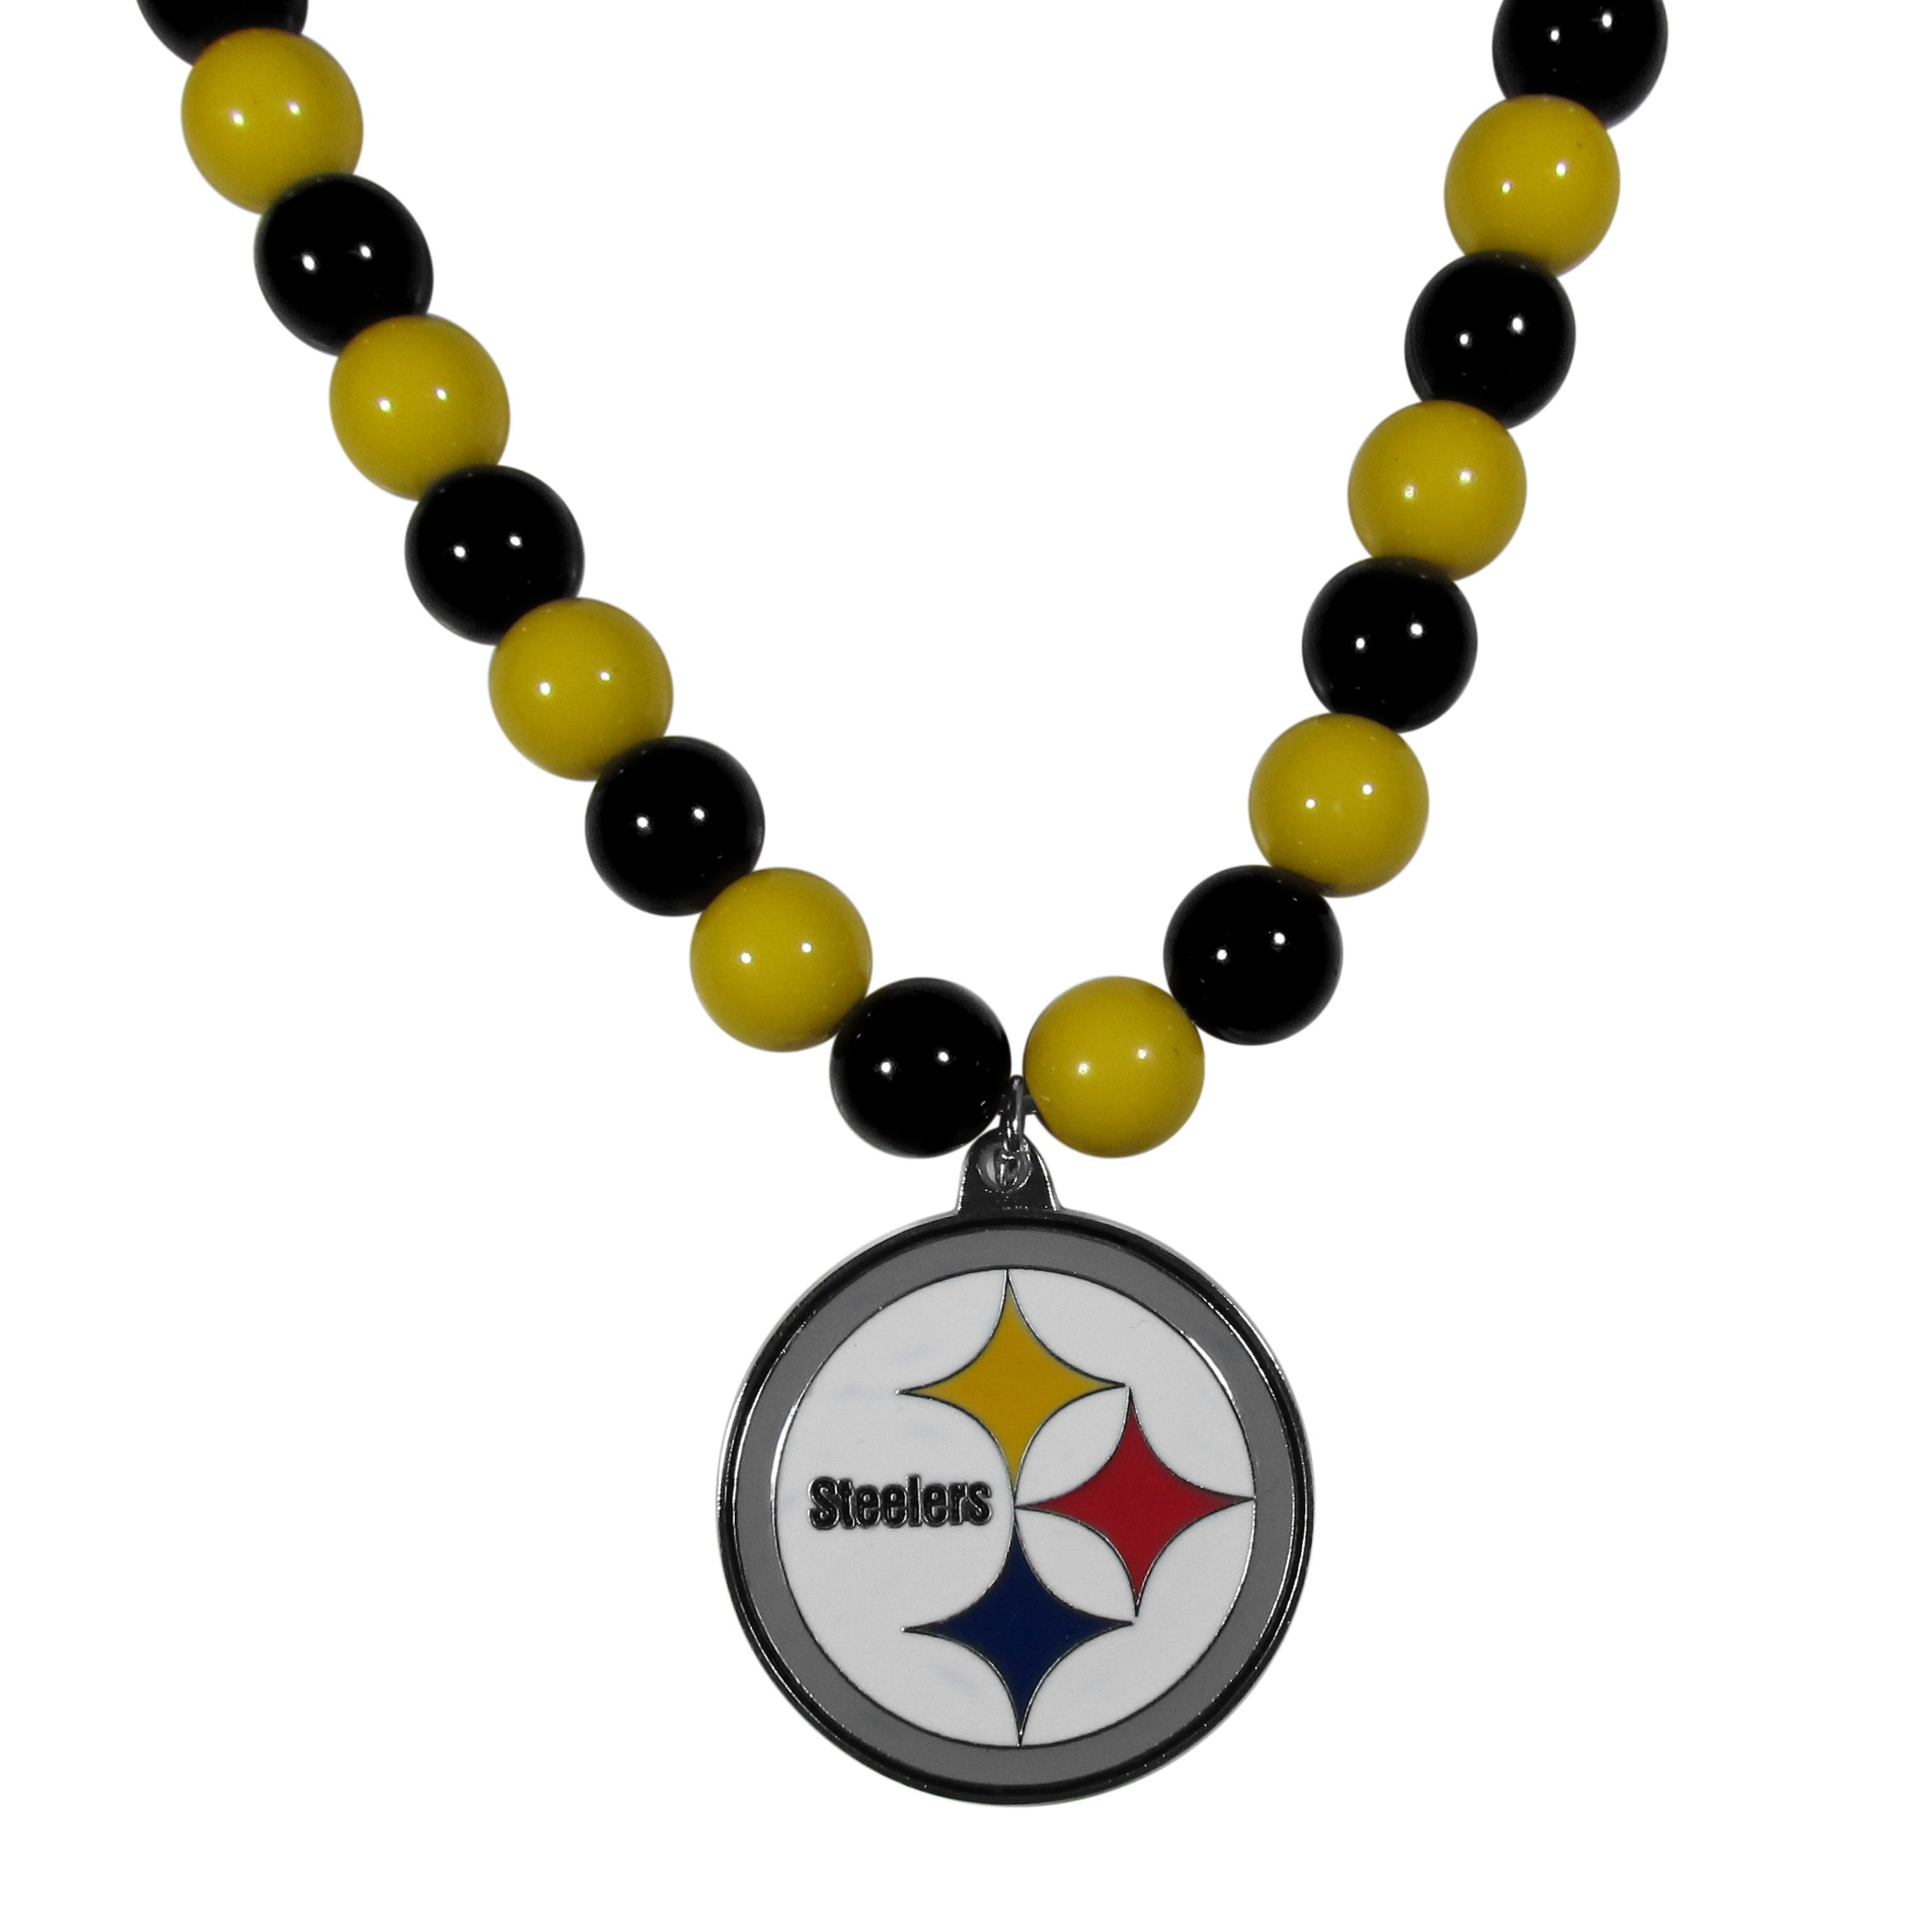 Pittsburgh Steelers Fan Bead Necklace - Make a big statement with our fan bead necklaces! These brightly colored necklace have a 24 inch string of alternating colored beads with an extra large, high-polish Pittsburgh Steelers pendant.